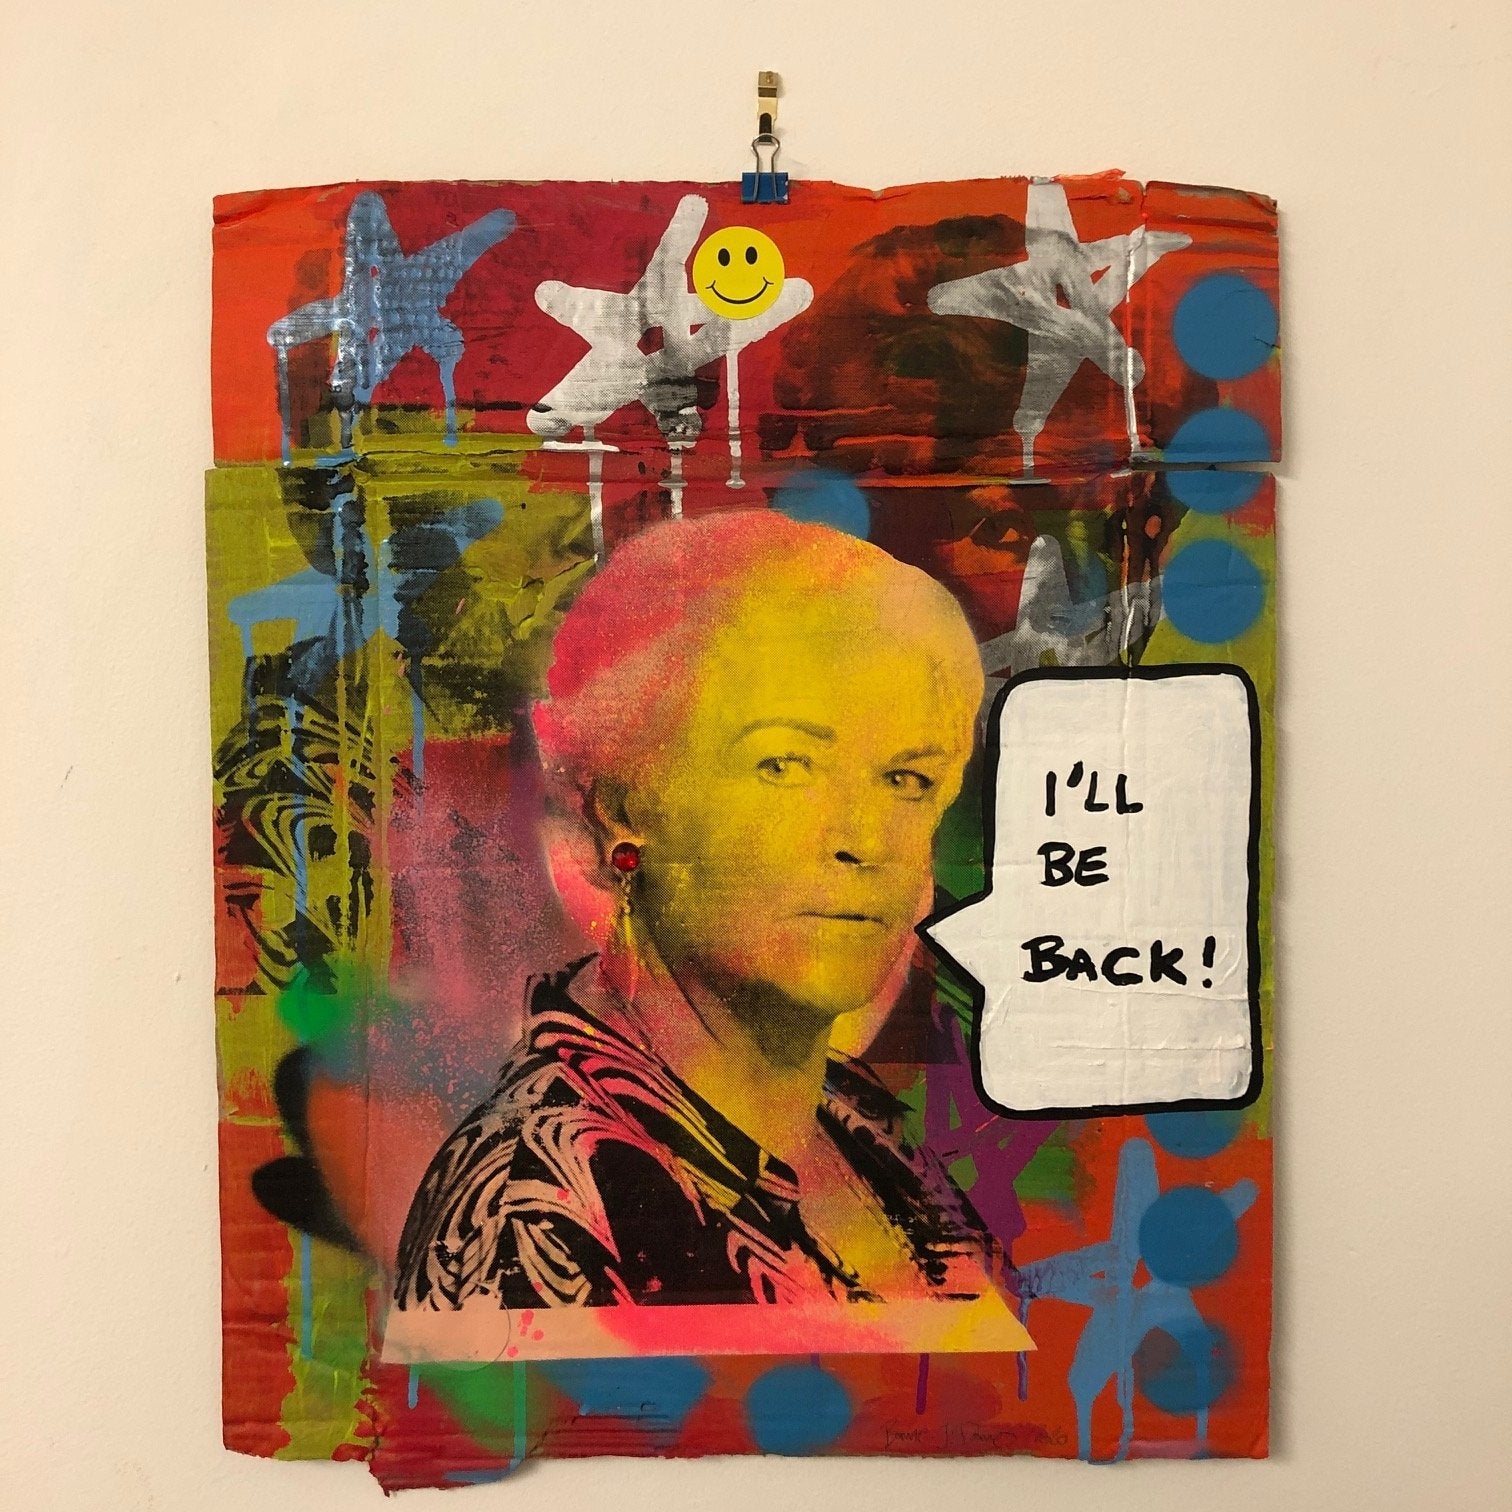 Pat will be Back by Barrie J Davies 2020, mixed media on cardboard, unframed, 44cm x 47cm.  Barrie J Davies is an Artist - Pop Art and Street art inspired Artist based in Brighton England UK - Pop Art Paintings, Street Art Prints & Editions available.